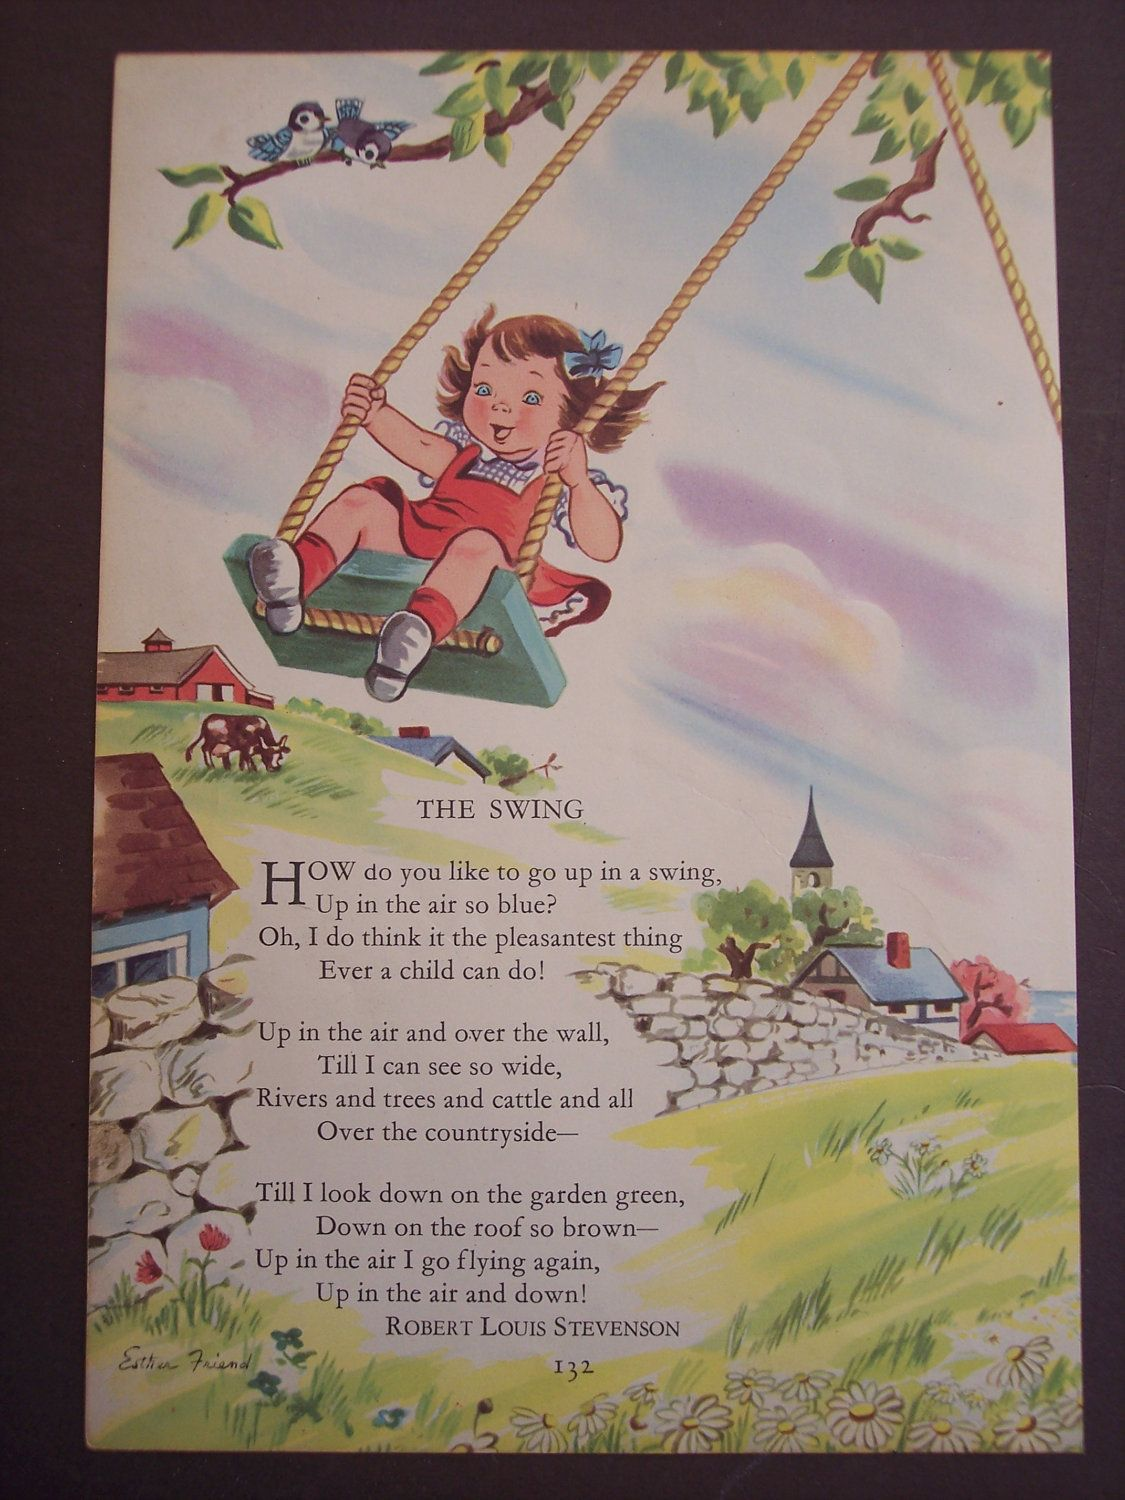 Robert Louis Stevenson Nursery Rhyme Poem Vintage Children S Book Print Illustration